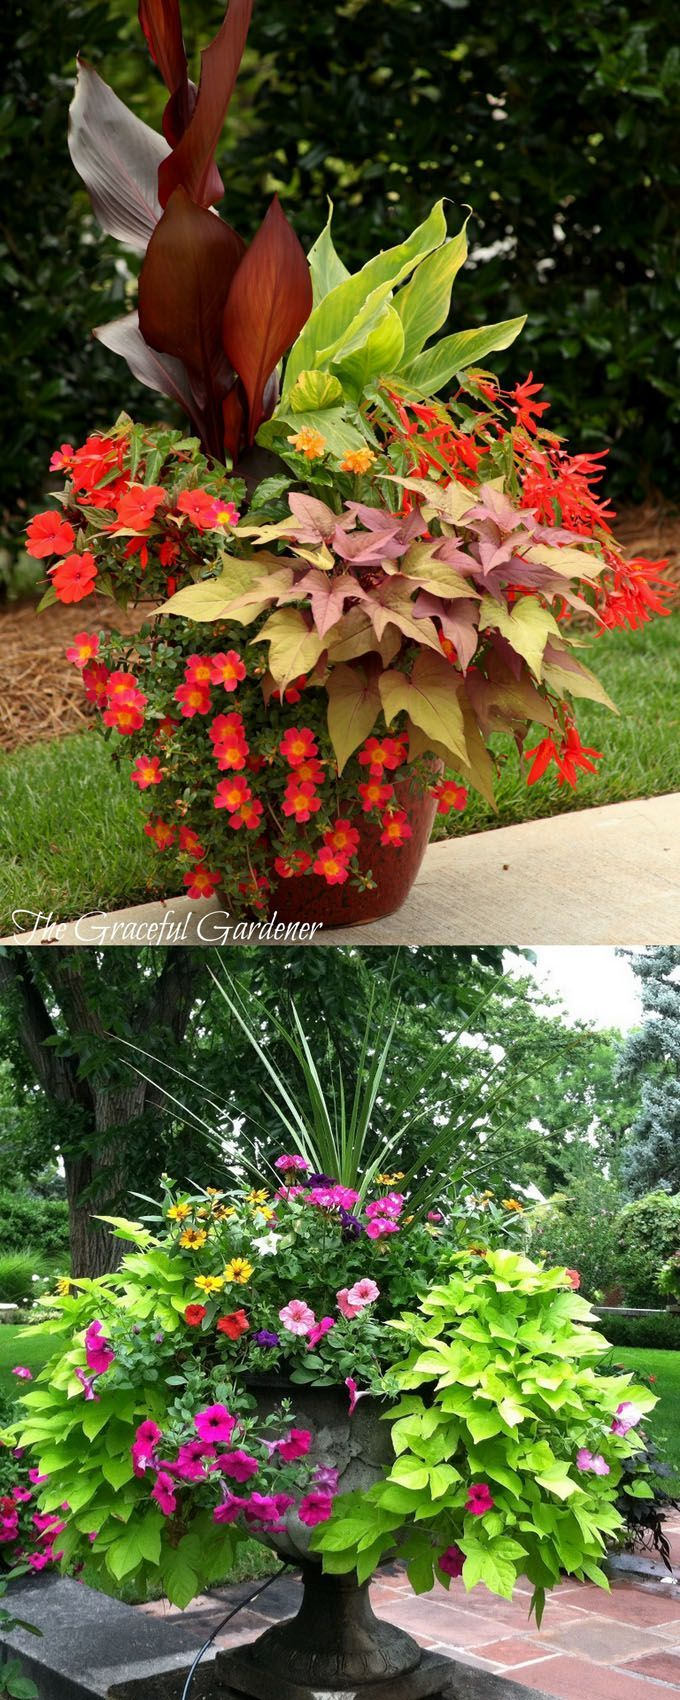 Garden Container Ideas 17 best images about outdoor flower container ideas on pinterest 24 Stunning Container Garden Planting Designs